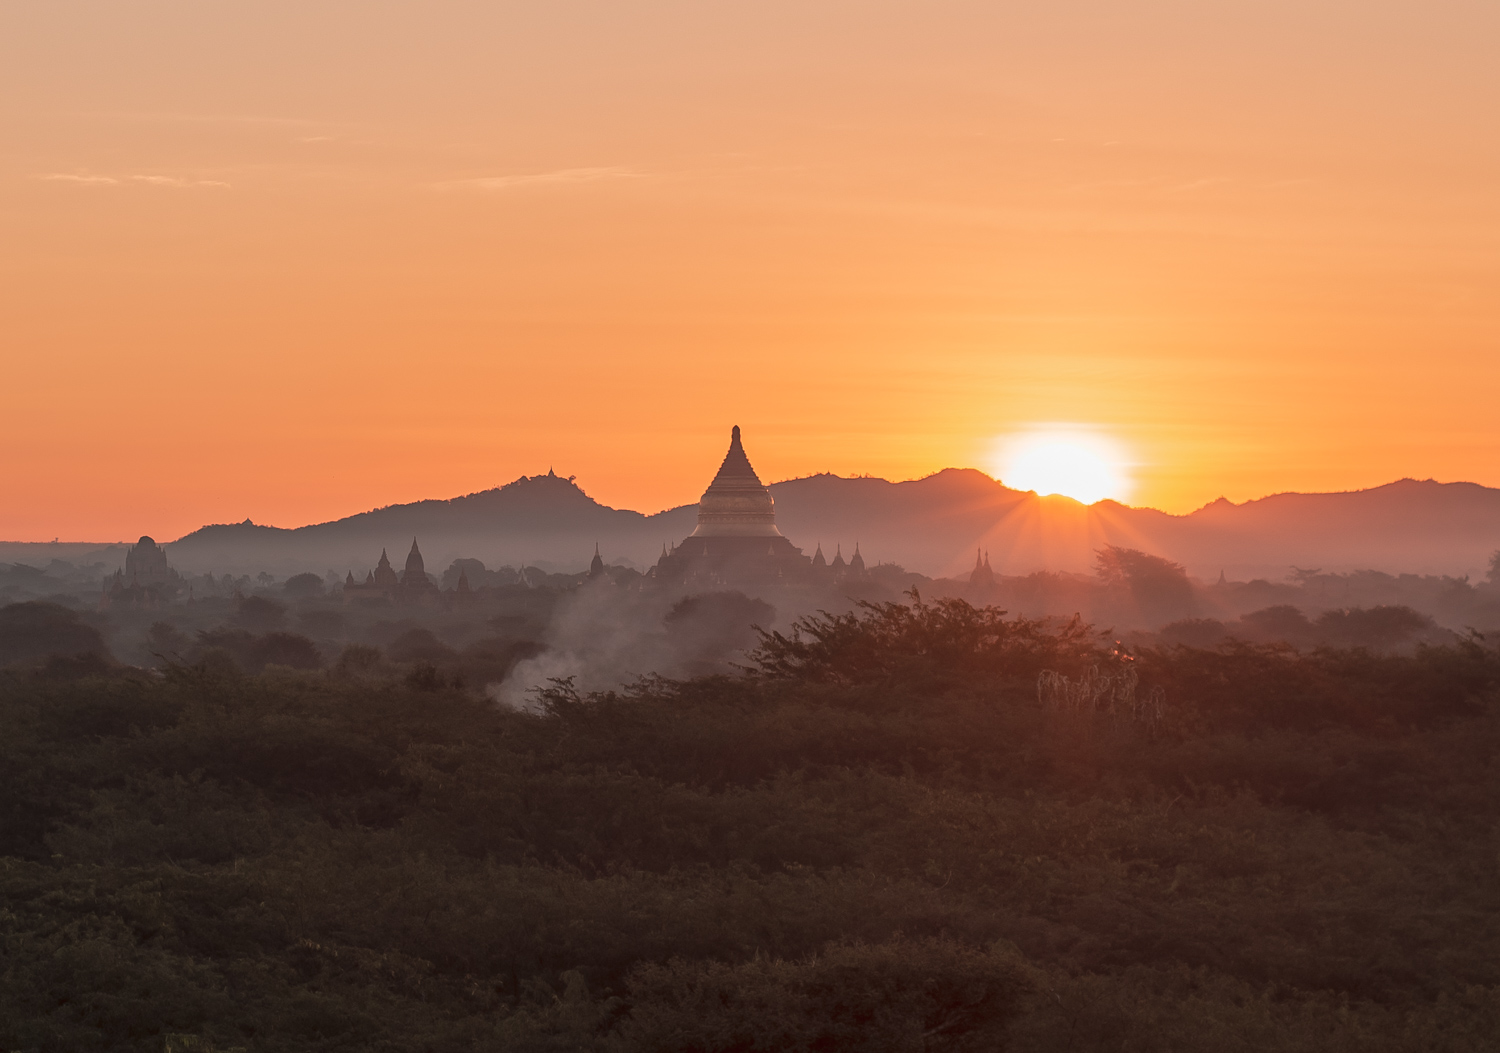 Amazing sunrise in Bagan, viewed from a stupa we climbed